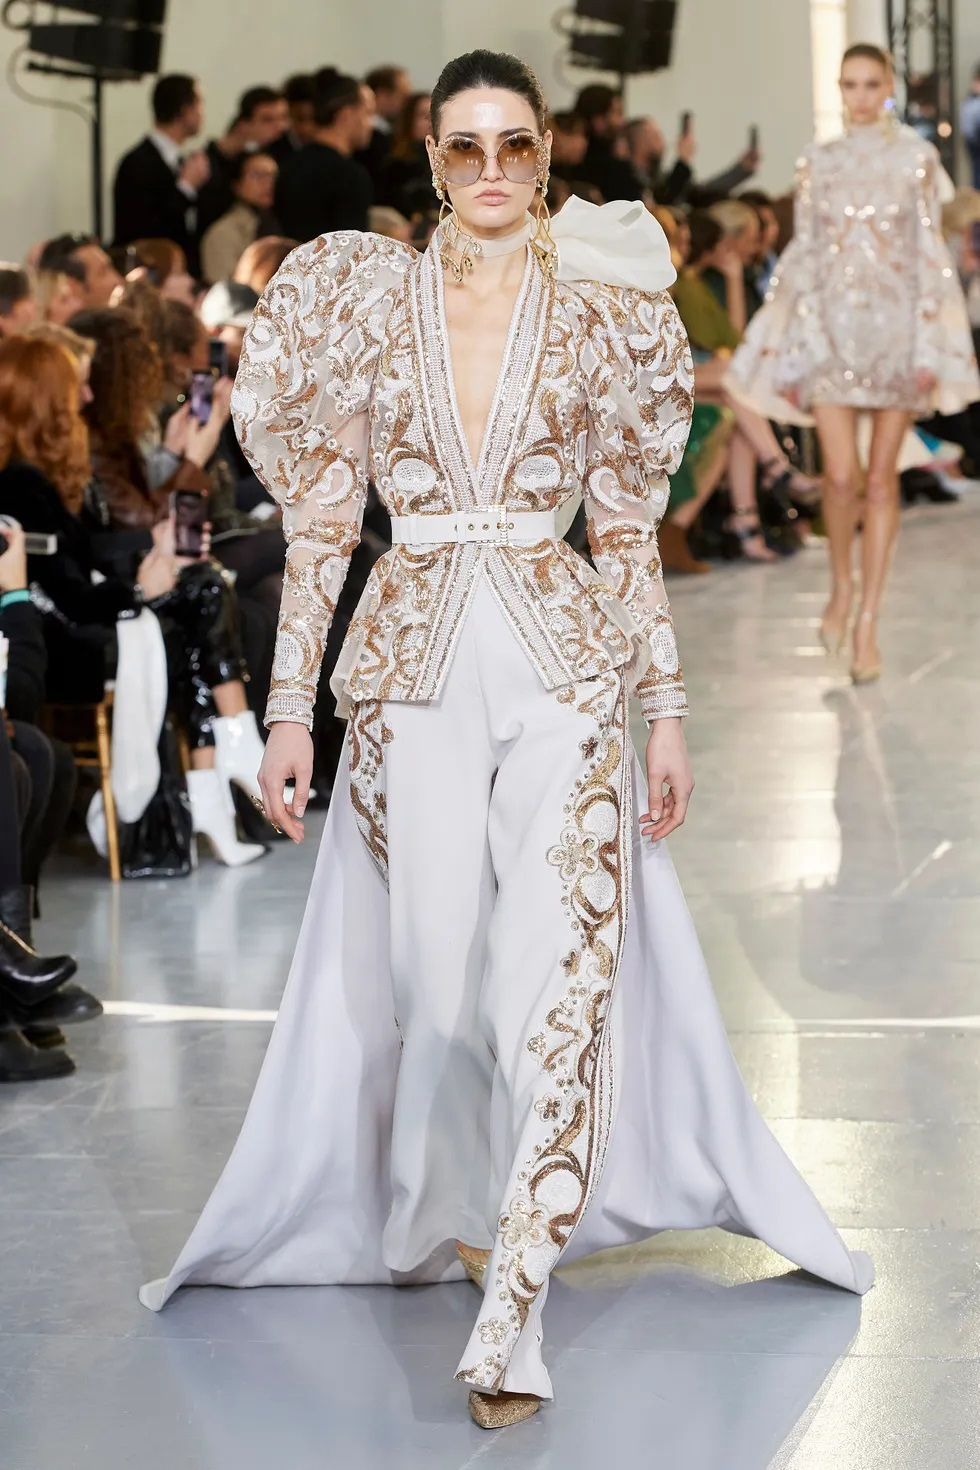 Elie Saab's collection